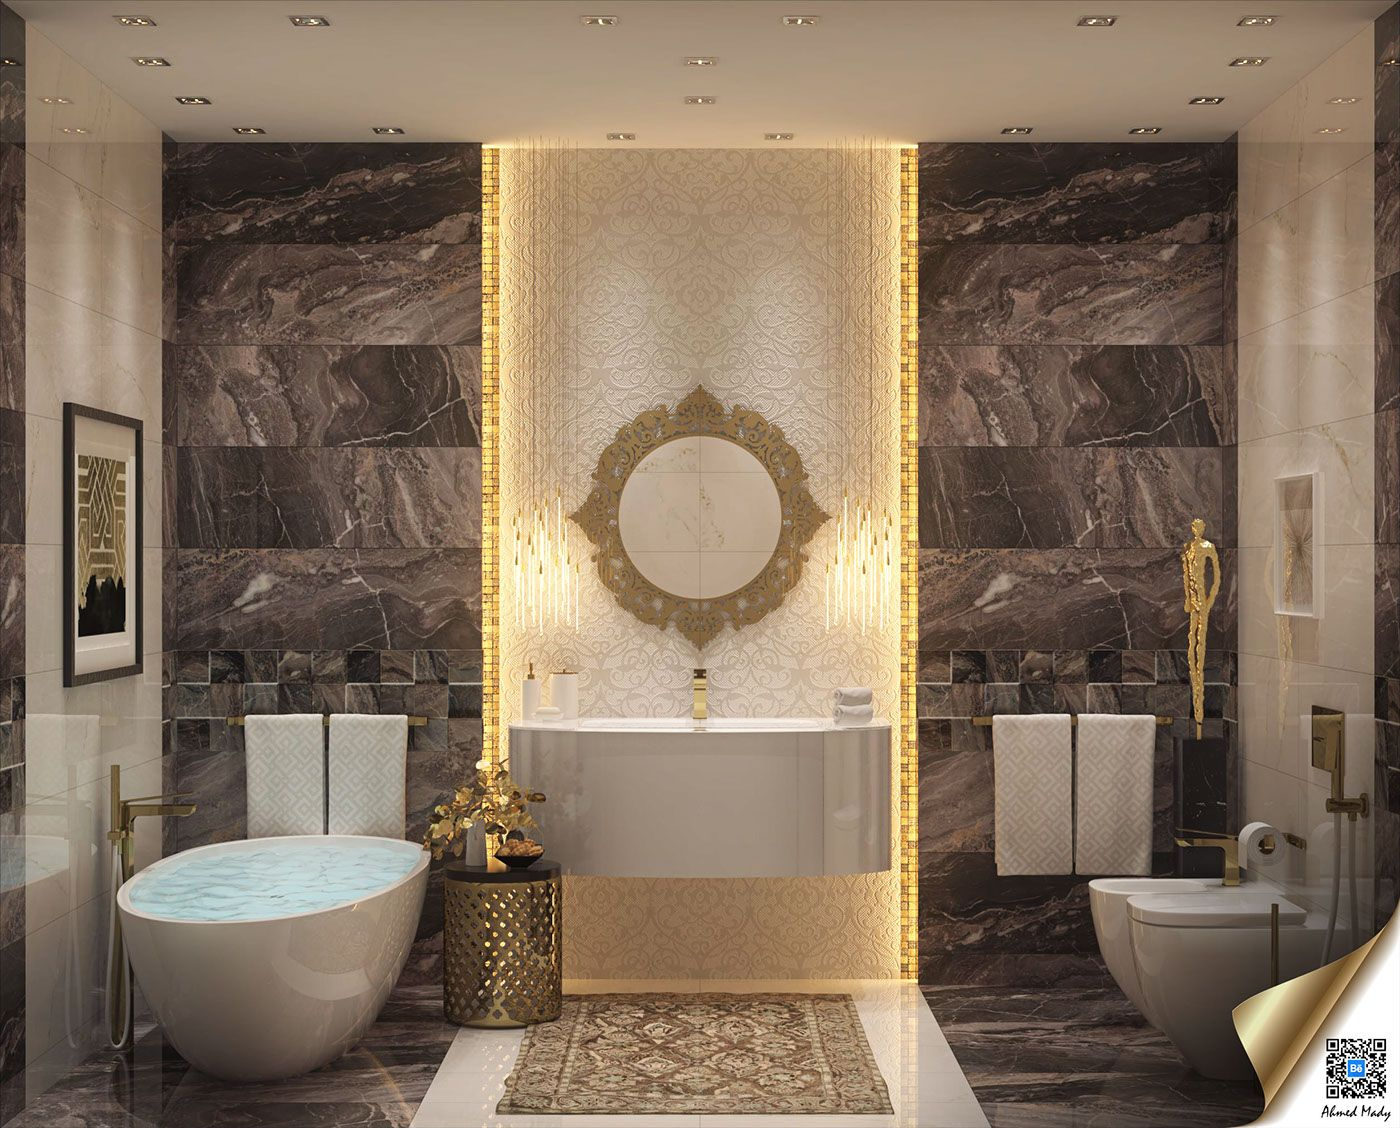 Elegant Bathrooms Designs Brilliant Tips How To Arrange Bathroom Design Ideas With Luxury